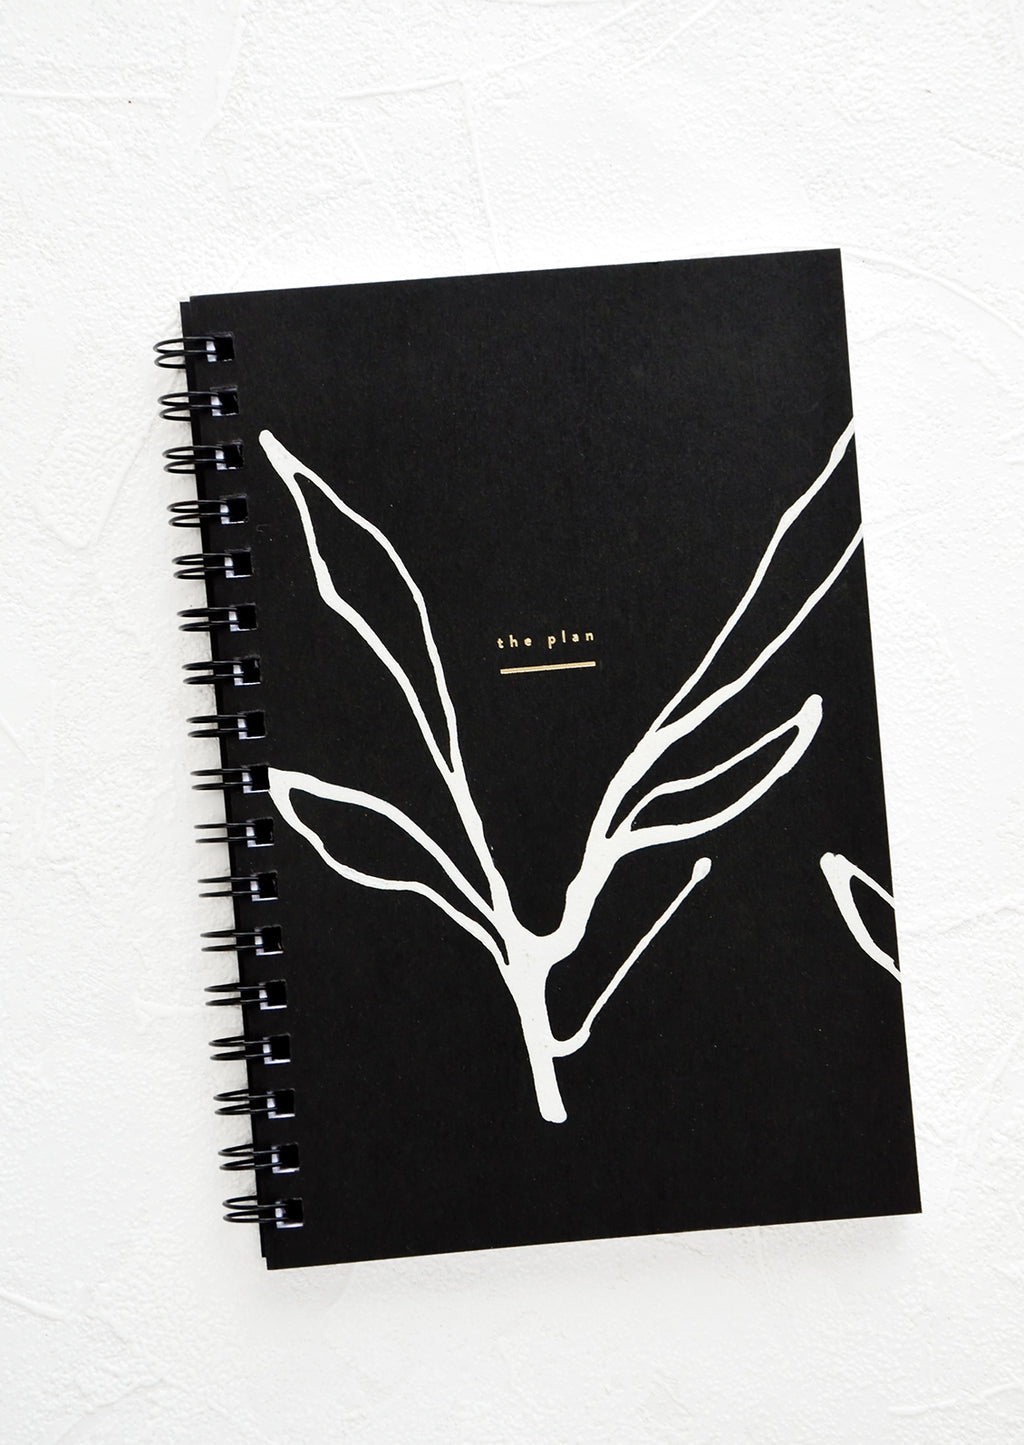 Seaweed Stroke: Spiral bound planner with black cover and hand-painted, abstract seaweed outline in white